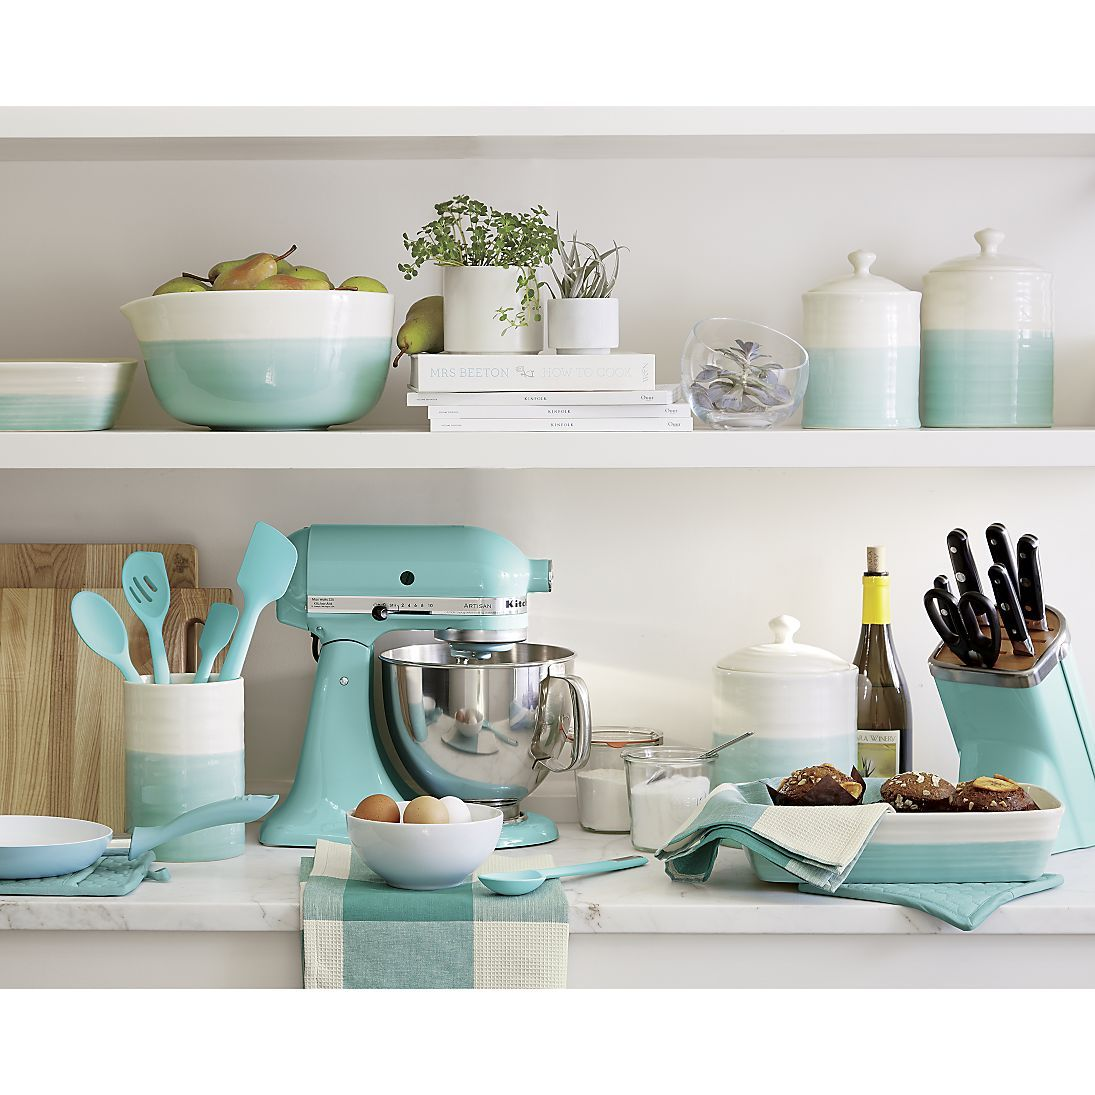 Kitchenaid Mixer Aqua Sky Accessories